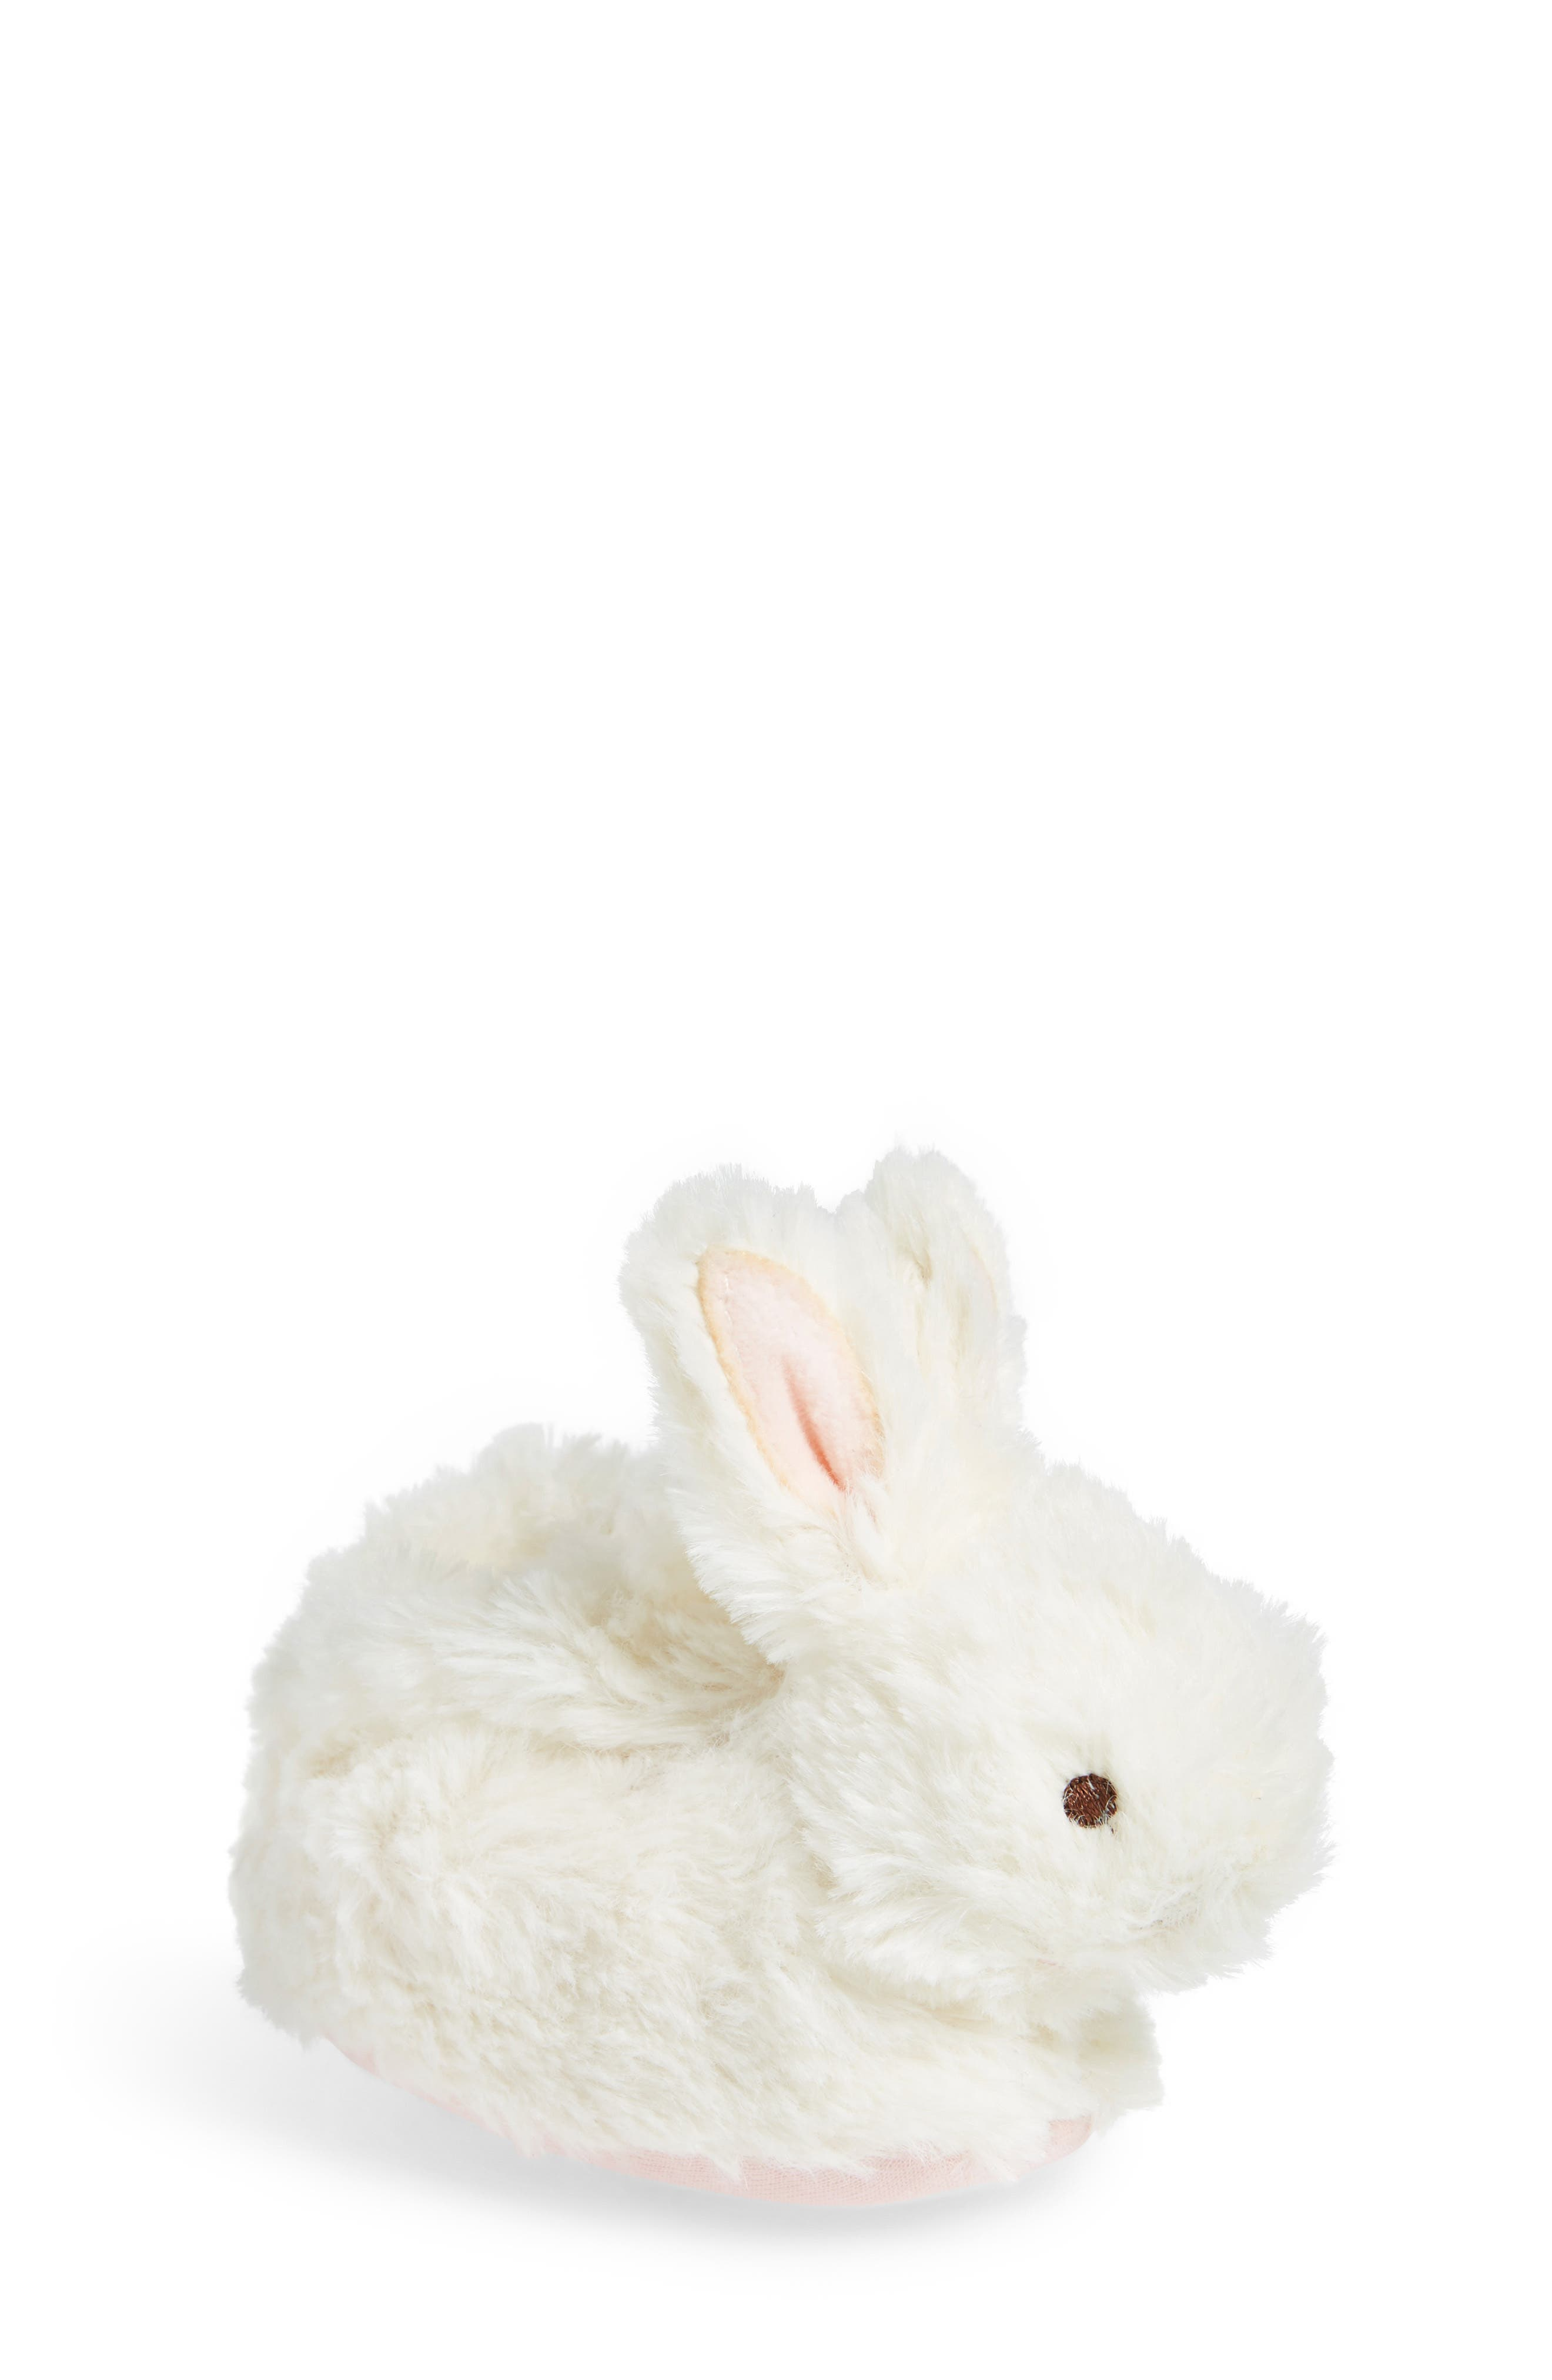 Alternate Image 1 Selected - TrimFit Faux Fur Bunny Slipper (Baby)